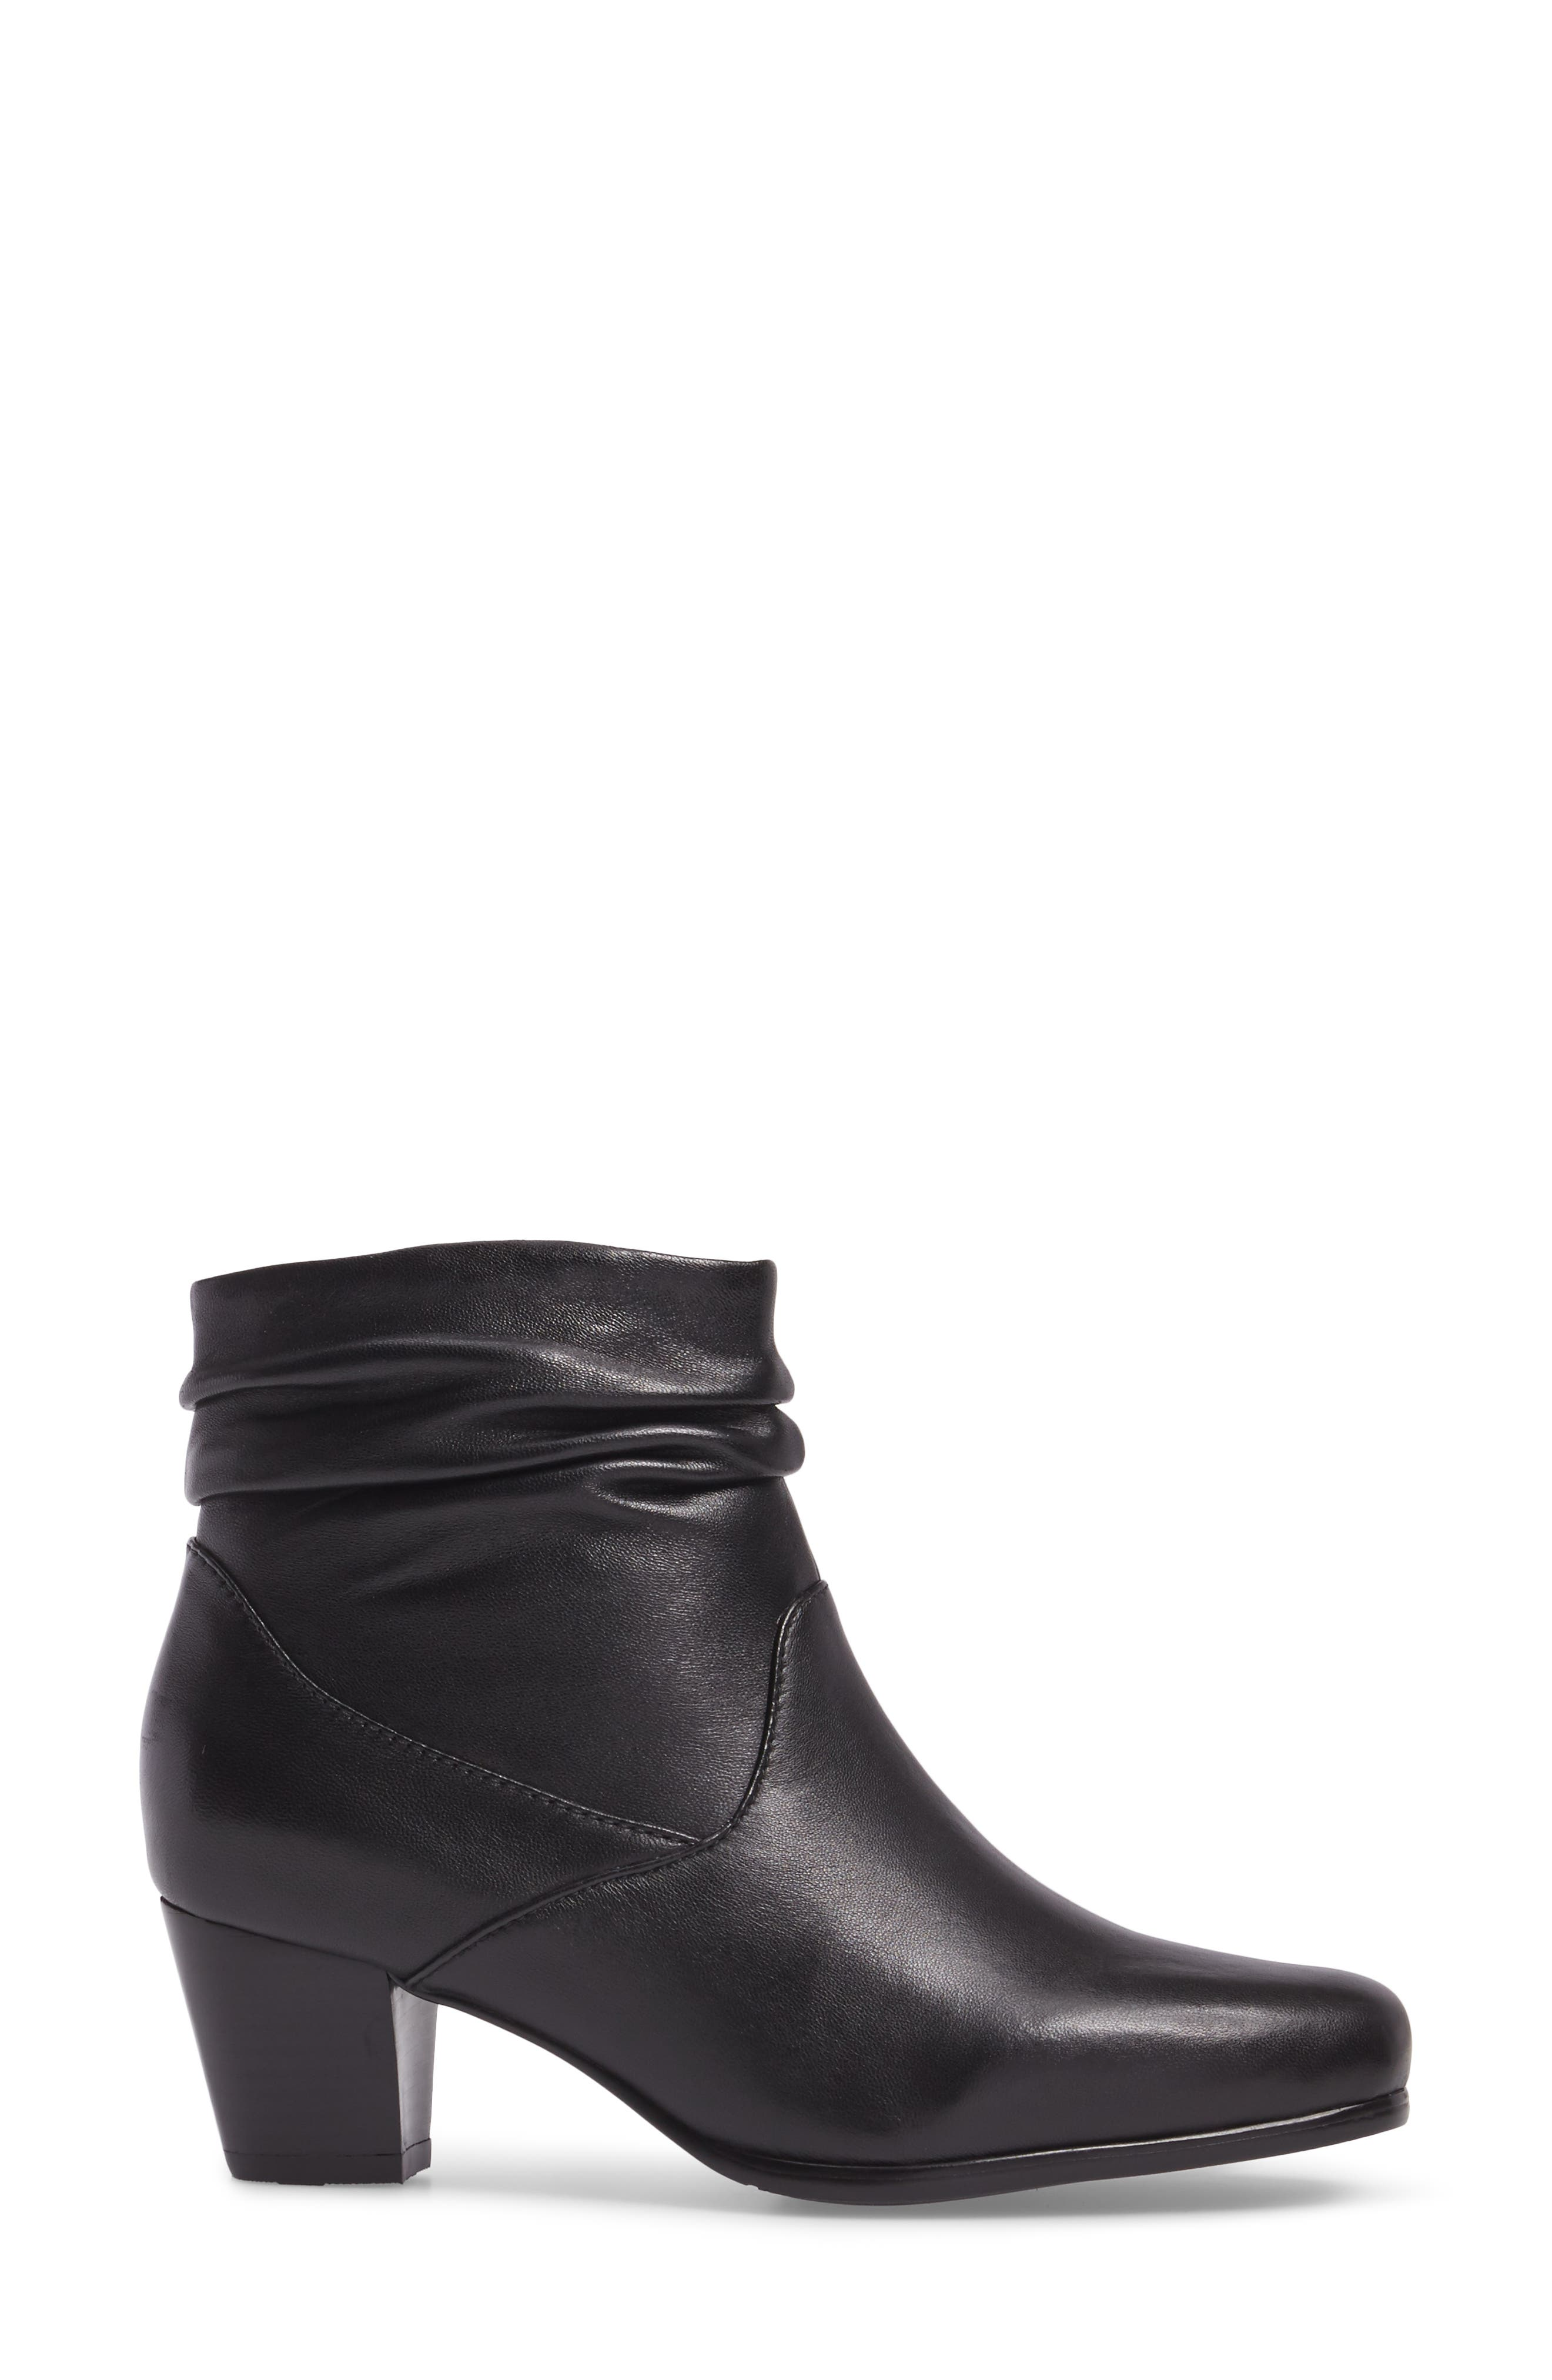 Shadown Bootie,                             Alternate thumbnail 3, color,                             BLACK LEATHER